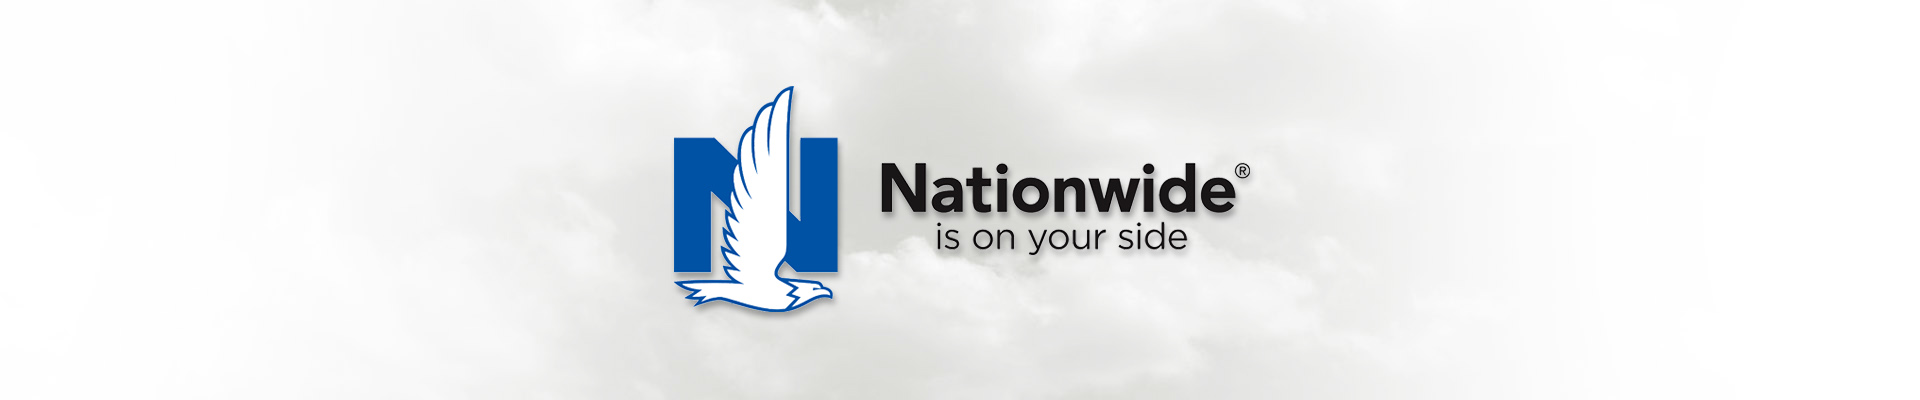 Nationwide Banner